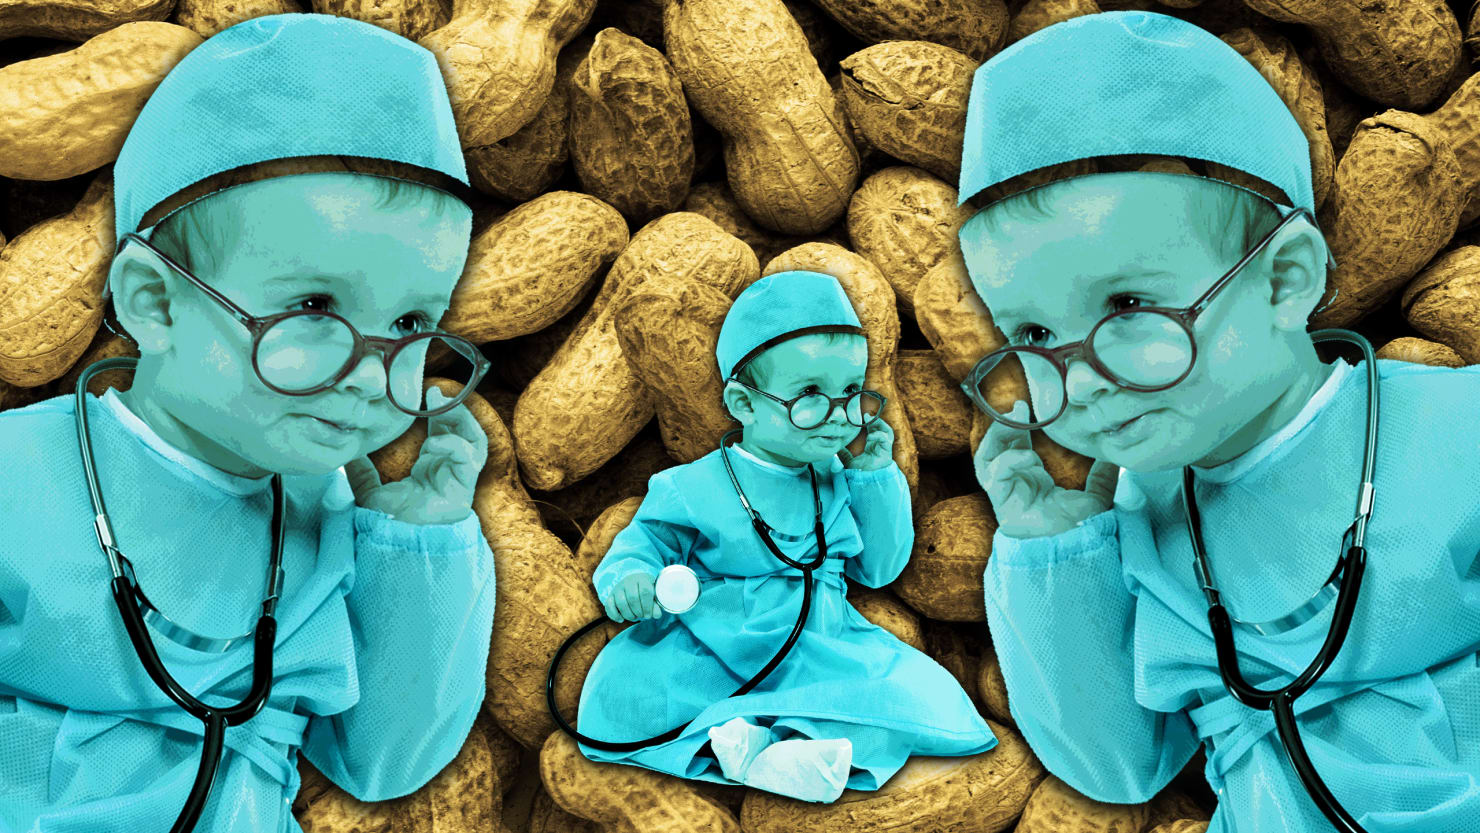 The Cure for Deadly Peanut Allergy Is... Peanuts?